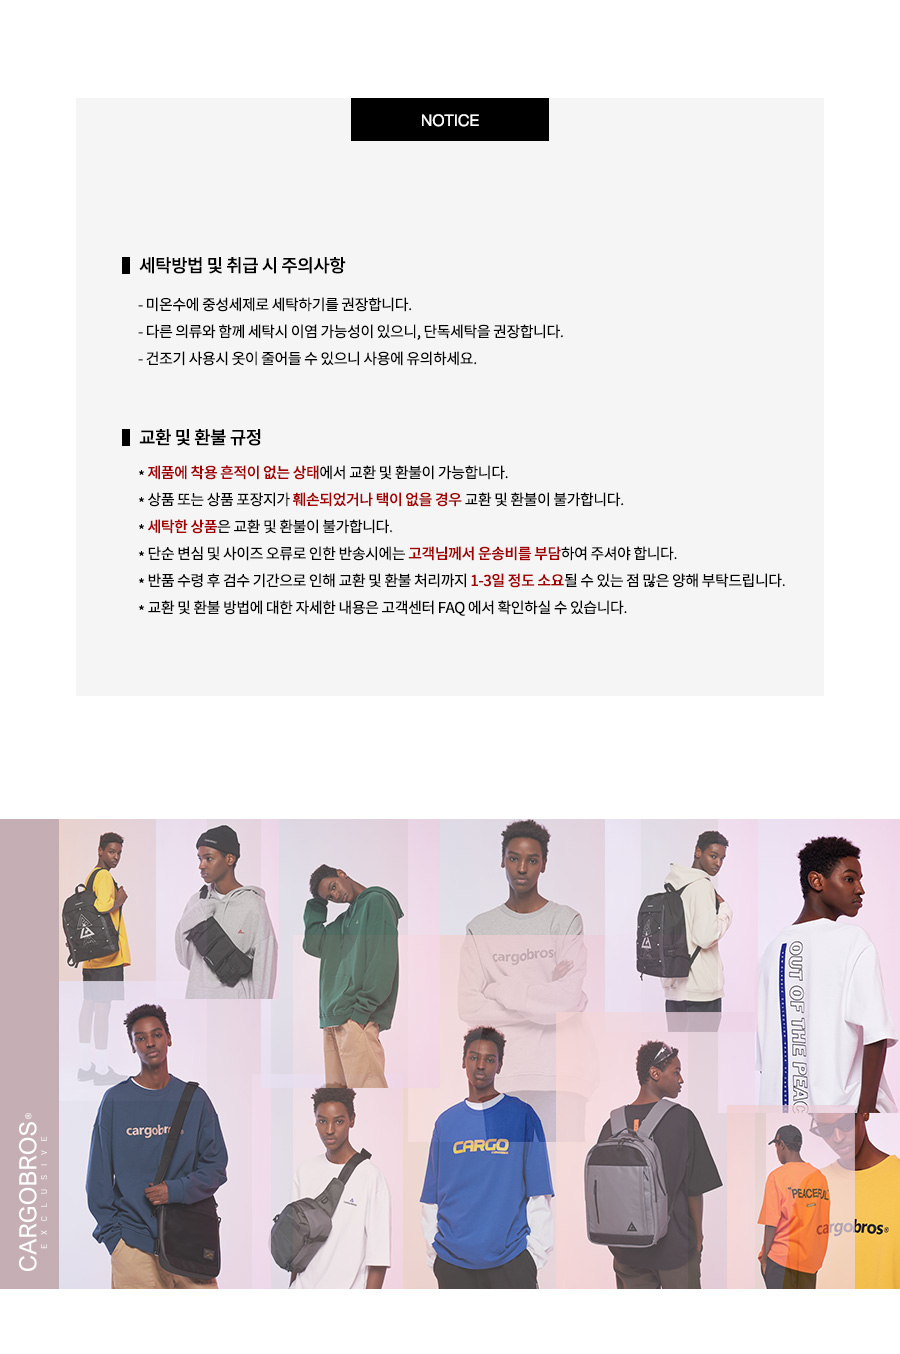 cb_clothes_notice.jpg